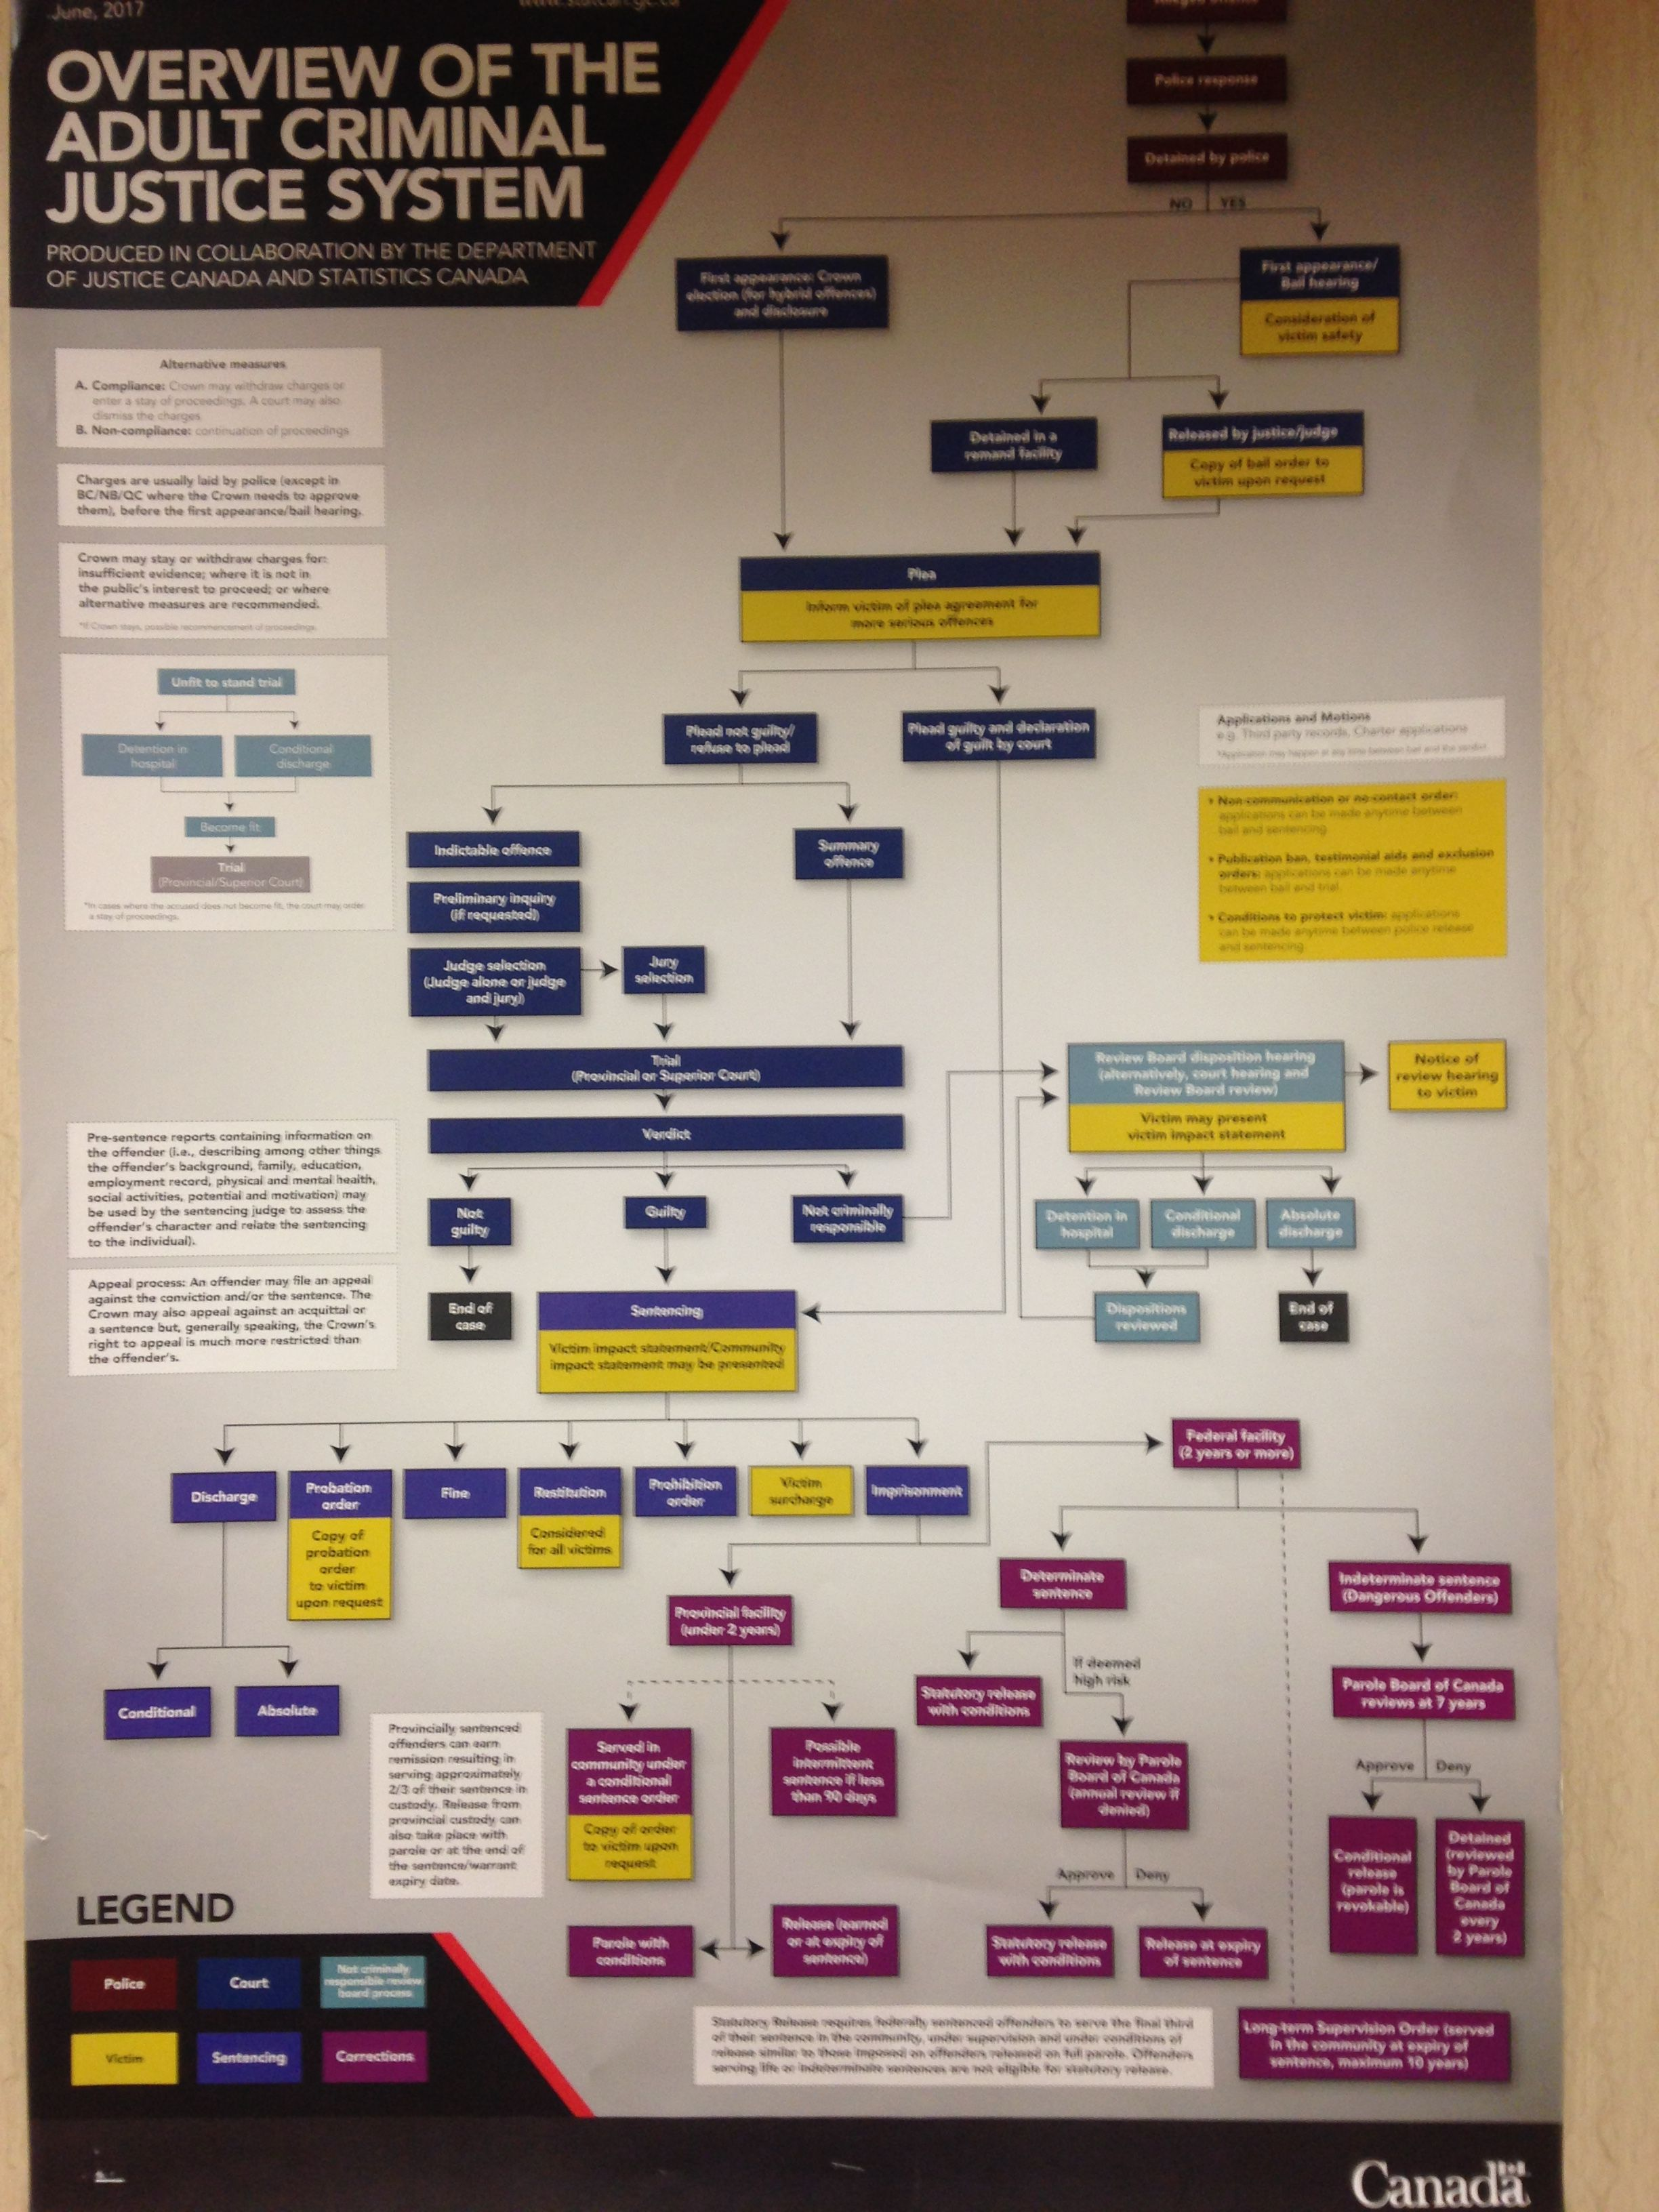 Canada S Overview Of The Adult Criminal Justice System I Thought